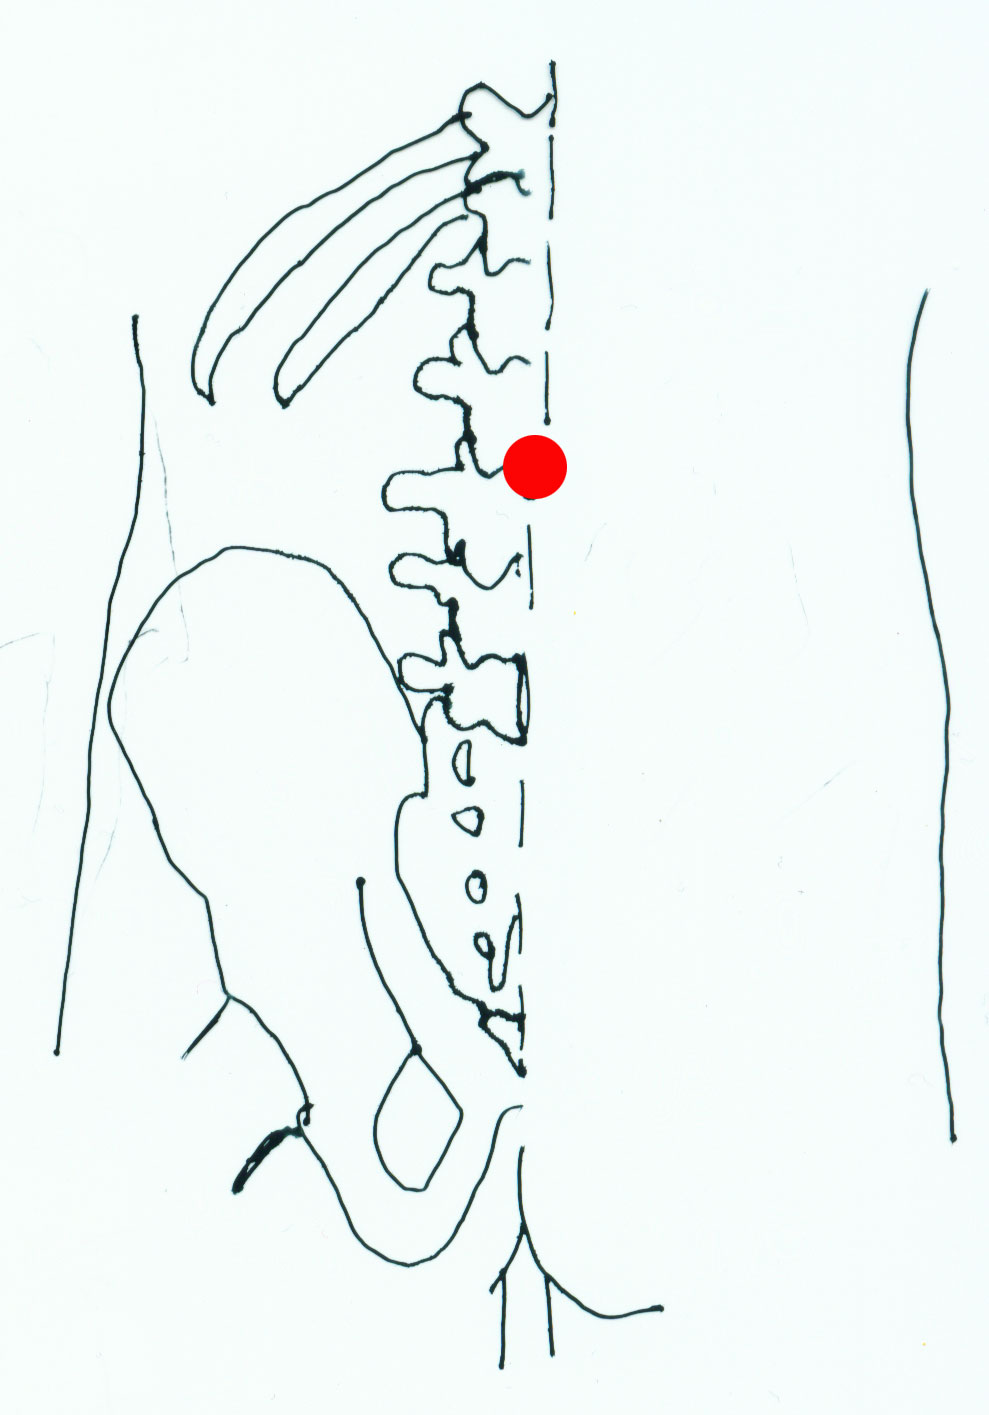 ming men - acupuncture point picture